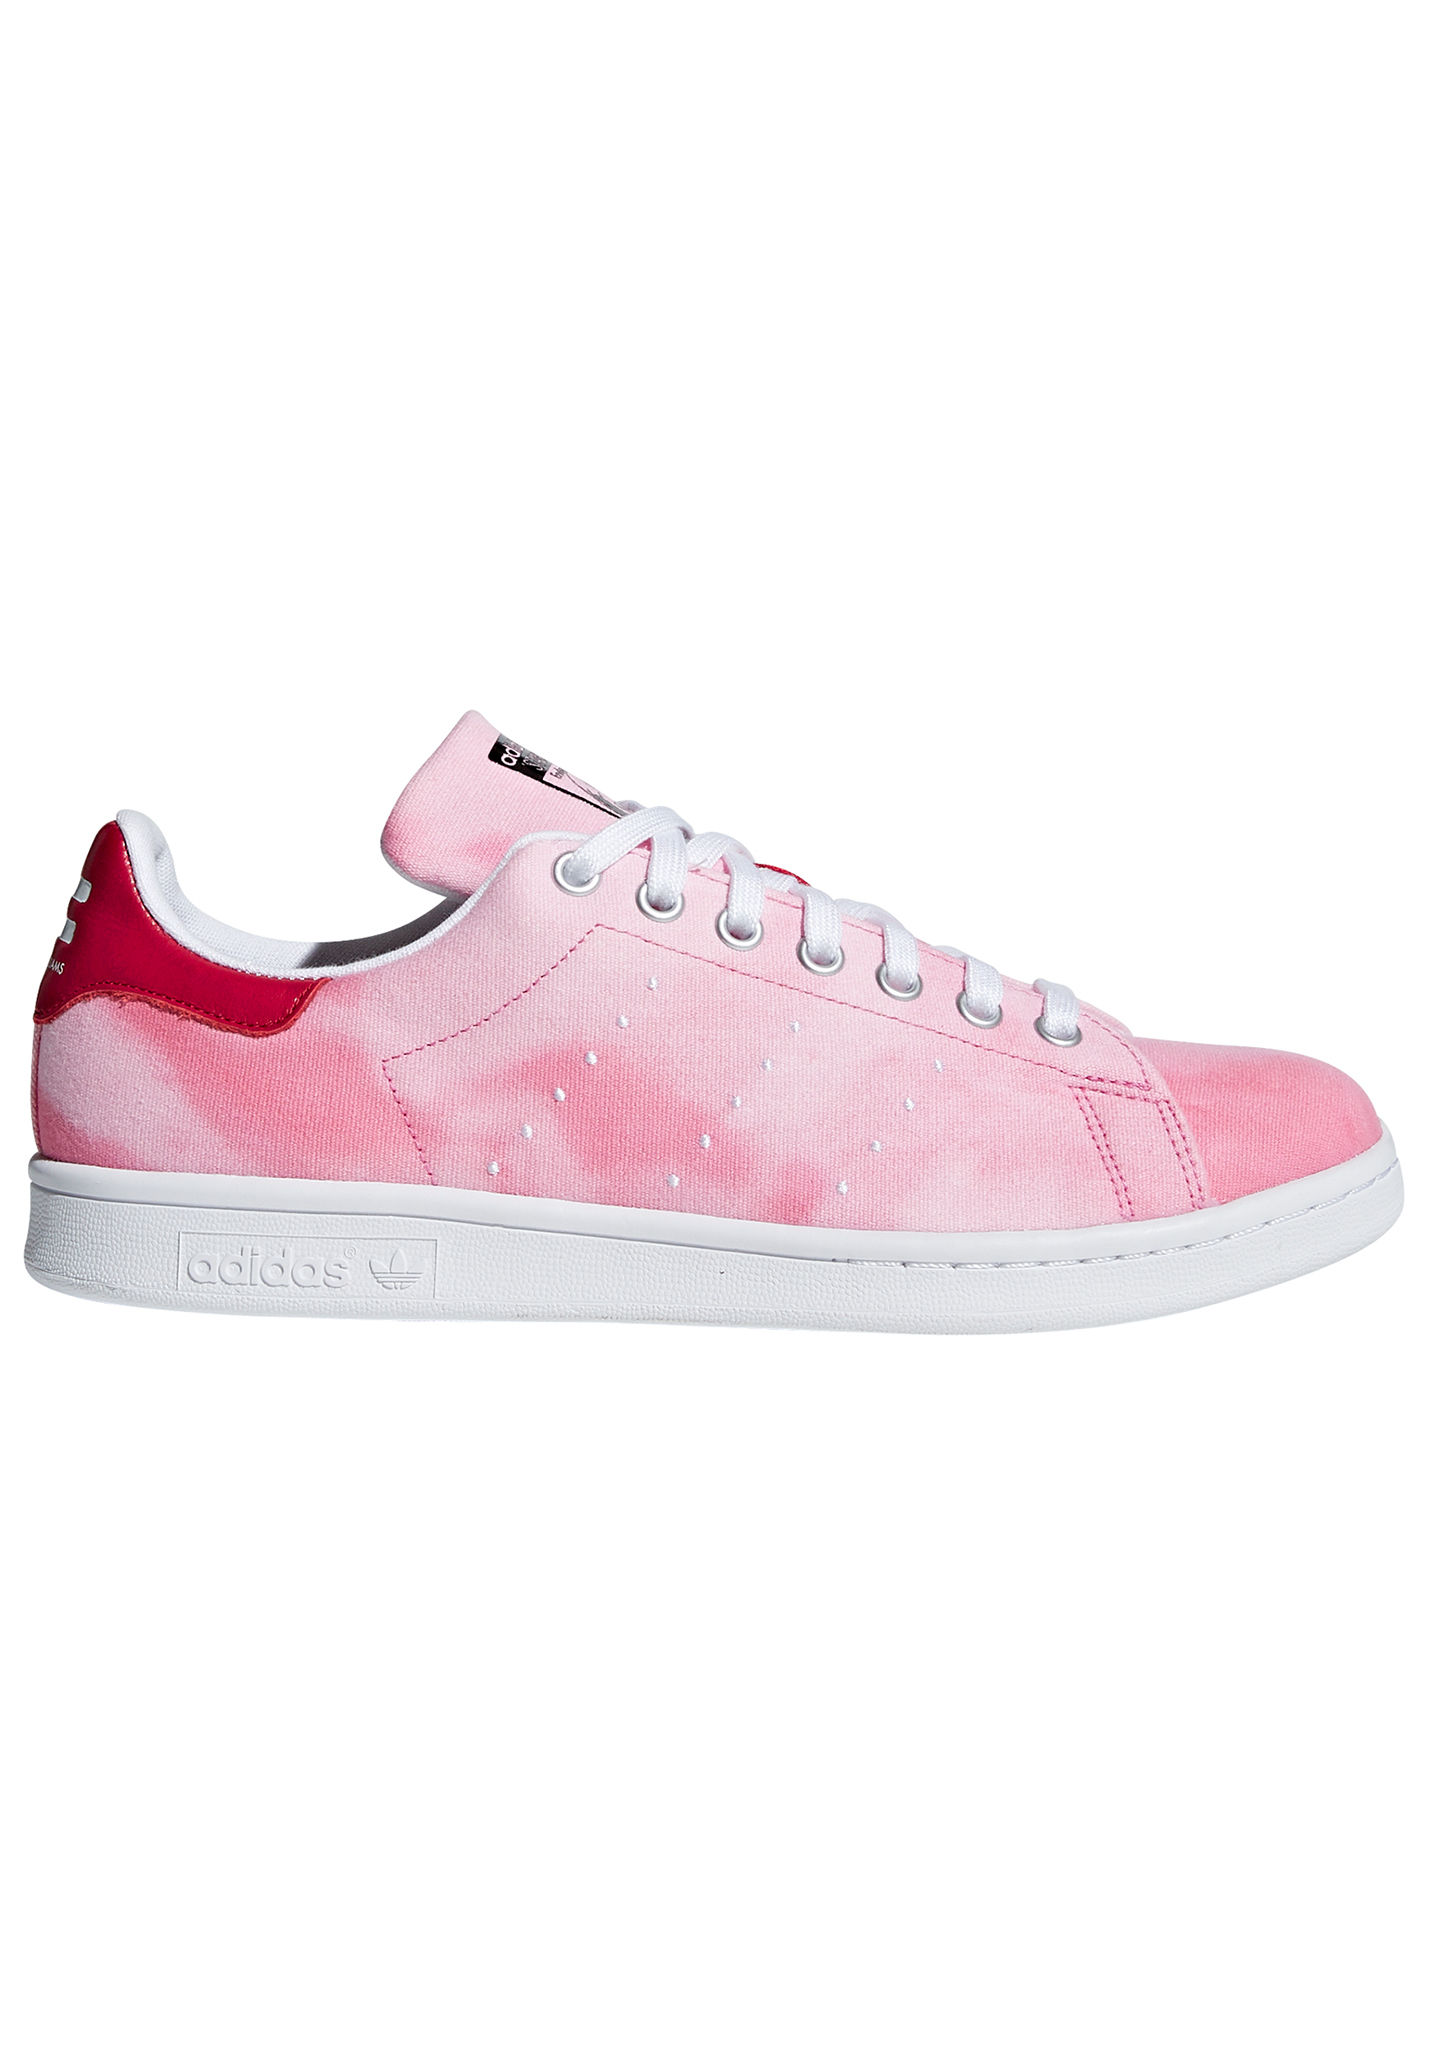 8a49896a2ced ADIDAS ORIGINALS Pharrell Williams Hu Holi Stan Smith - Sneakers for Men -  Pink - Planet Sports